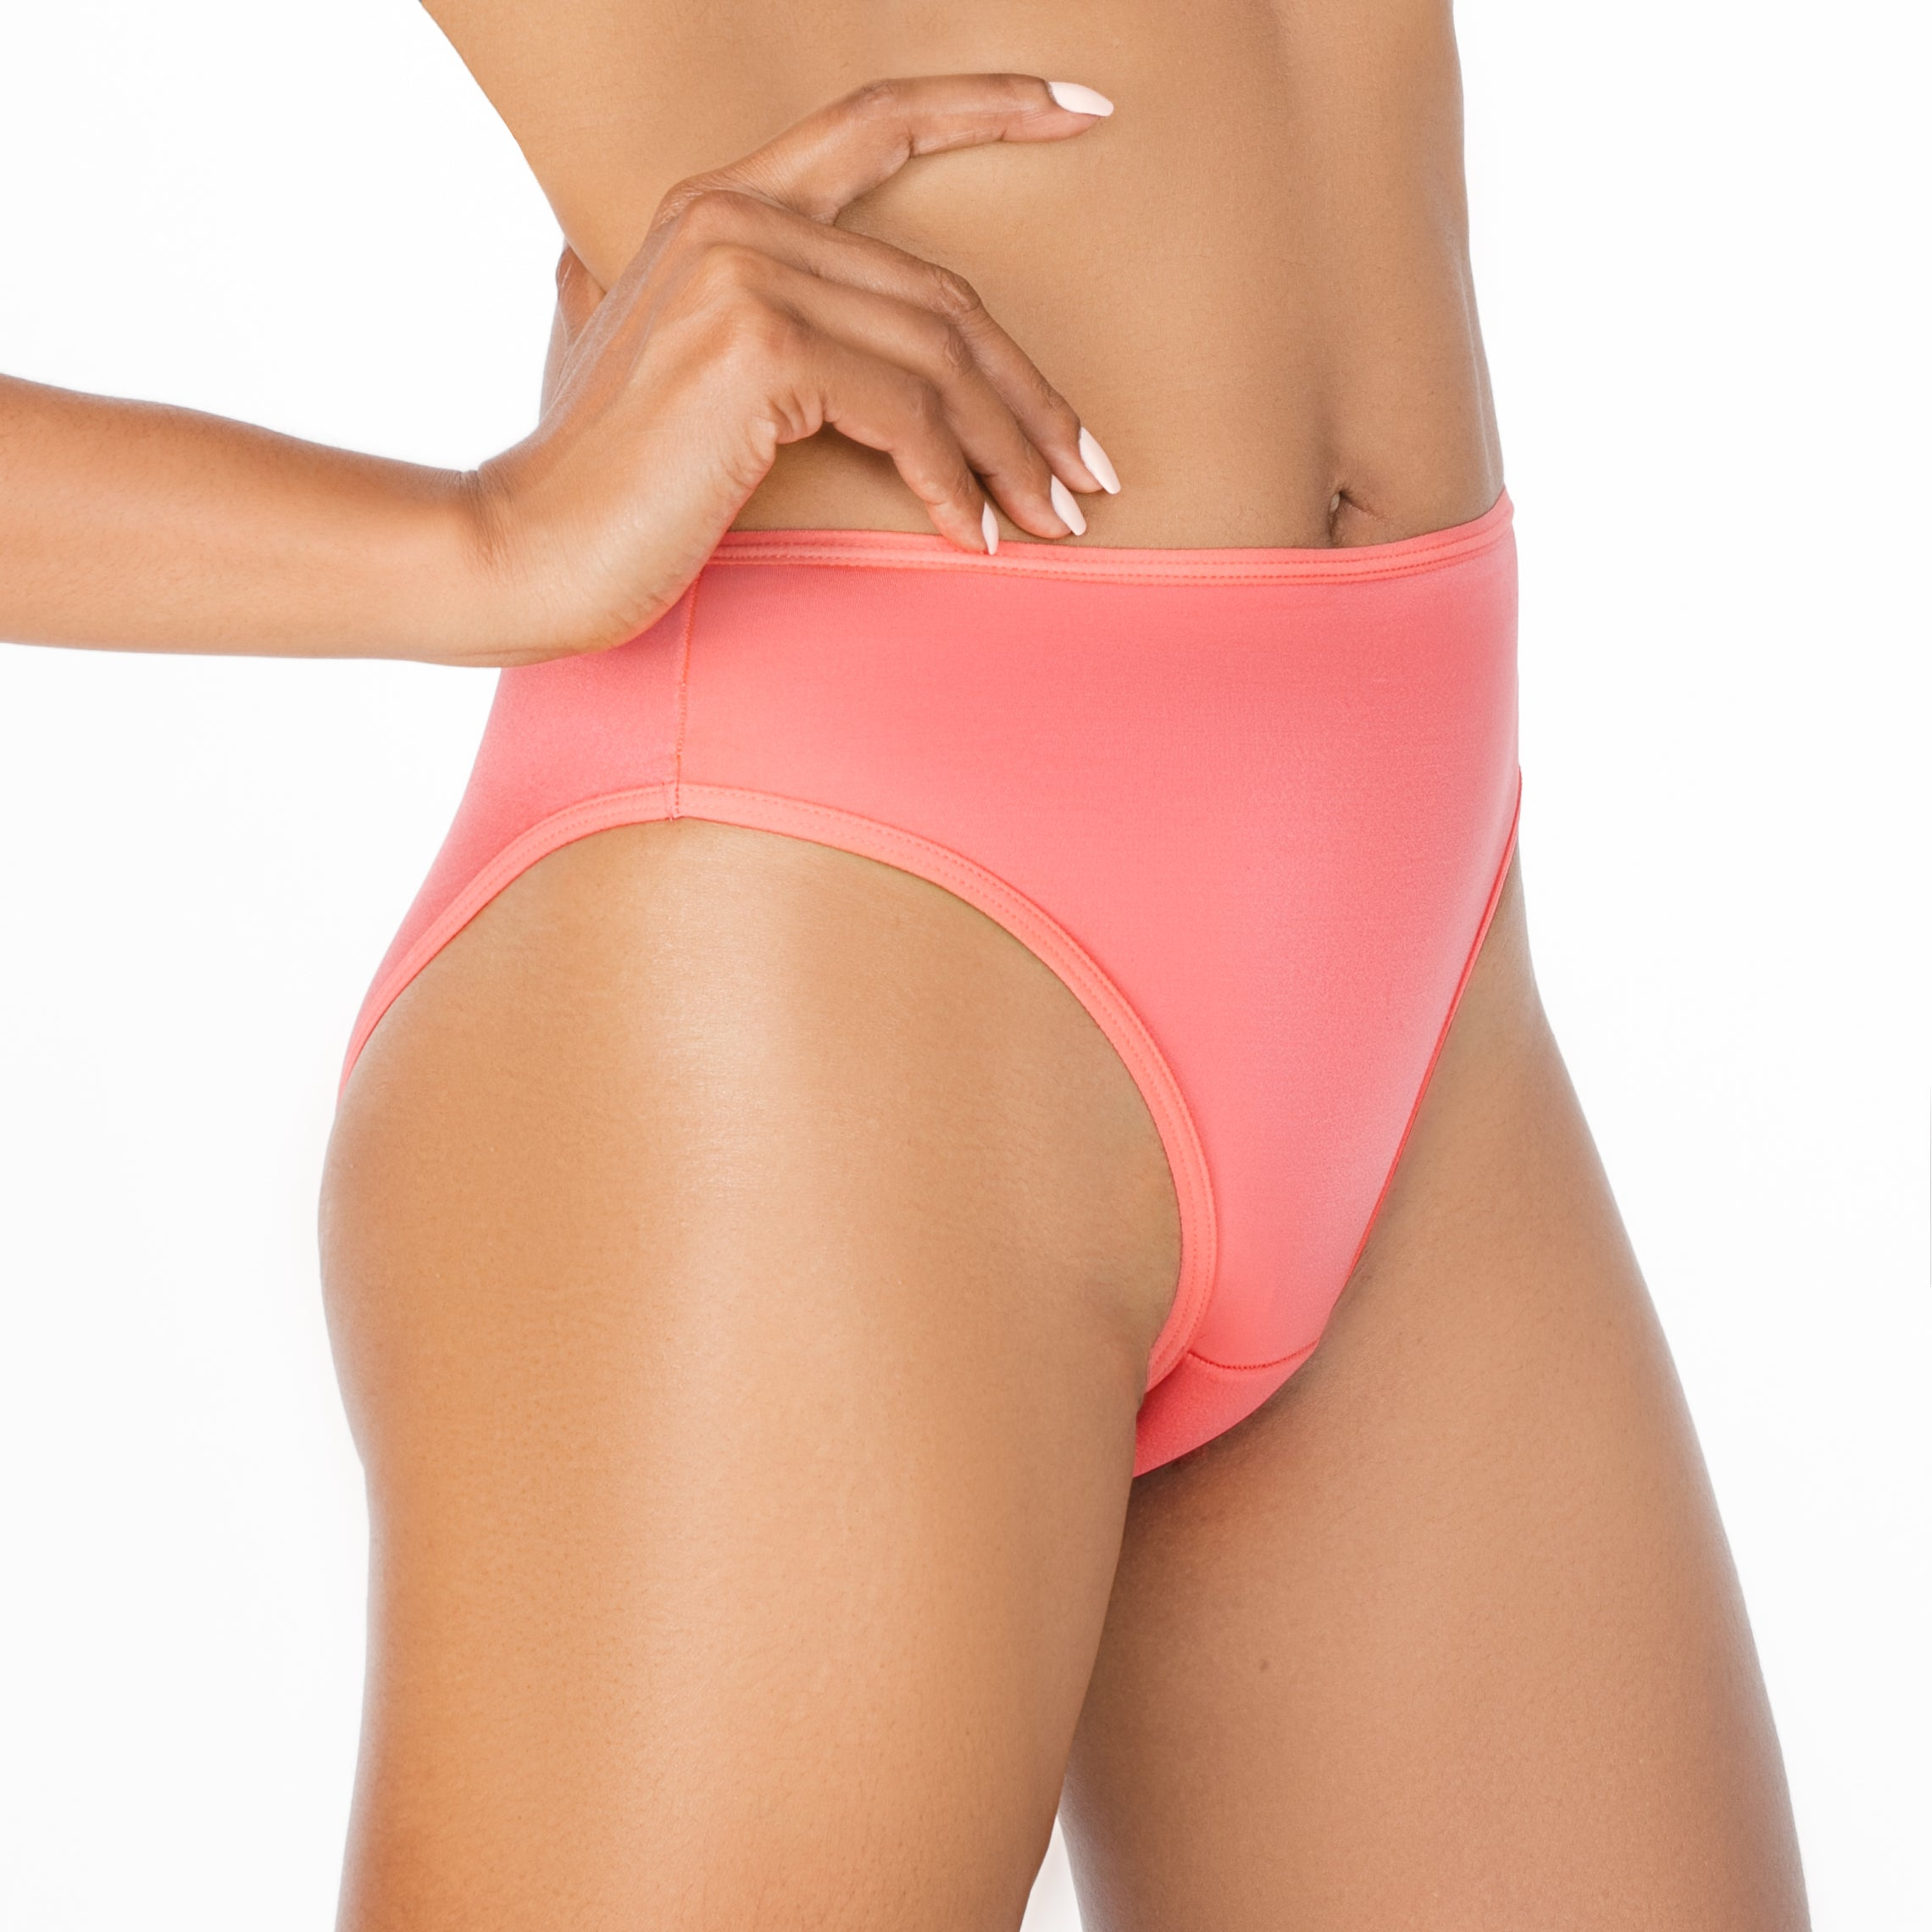 Relief Lilies Period Panties Calypso Coral